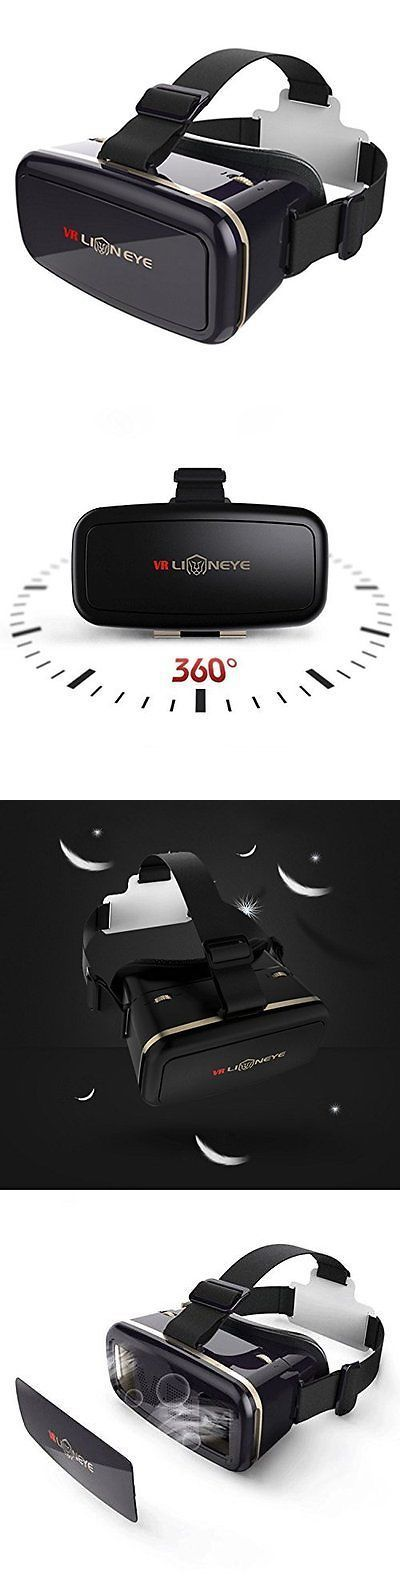 Smartphone VR Headsets: 3D Virtual Reality Headset 3D Glasses Mobile Phone For Iphone Samsung And Galaxy BUY IT NOW ONLY: $40.07